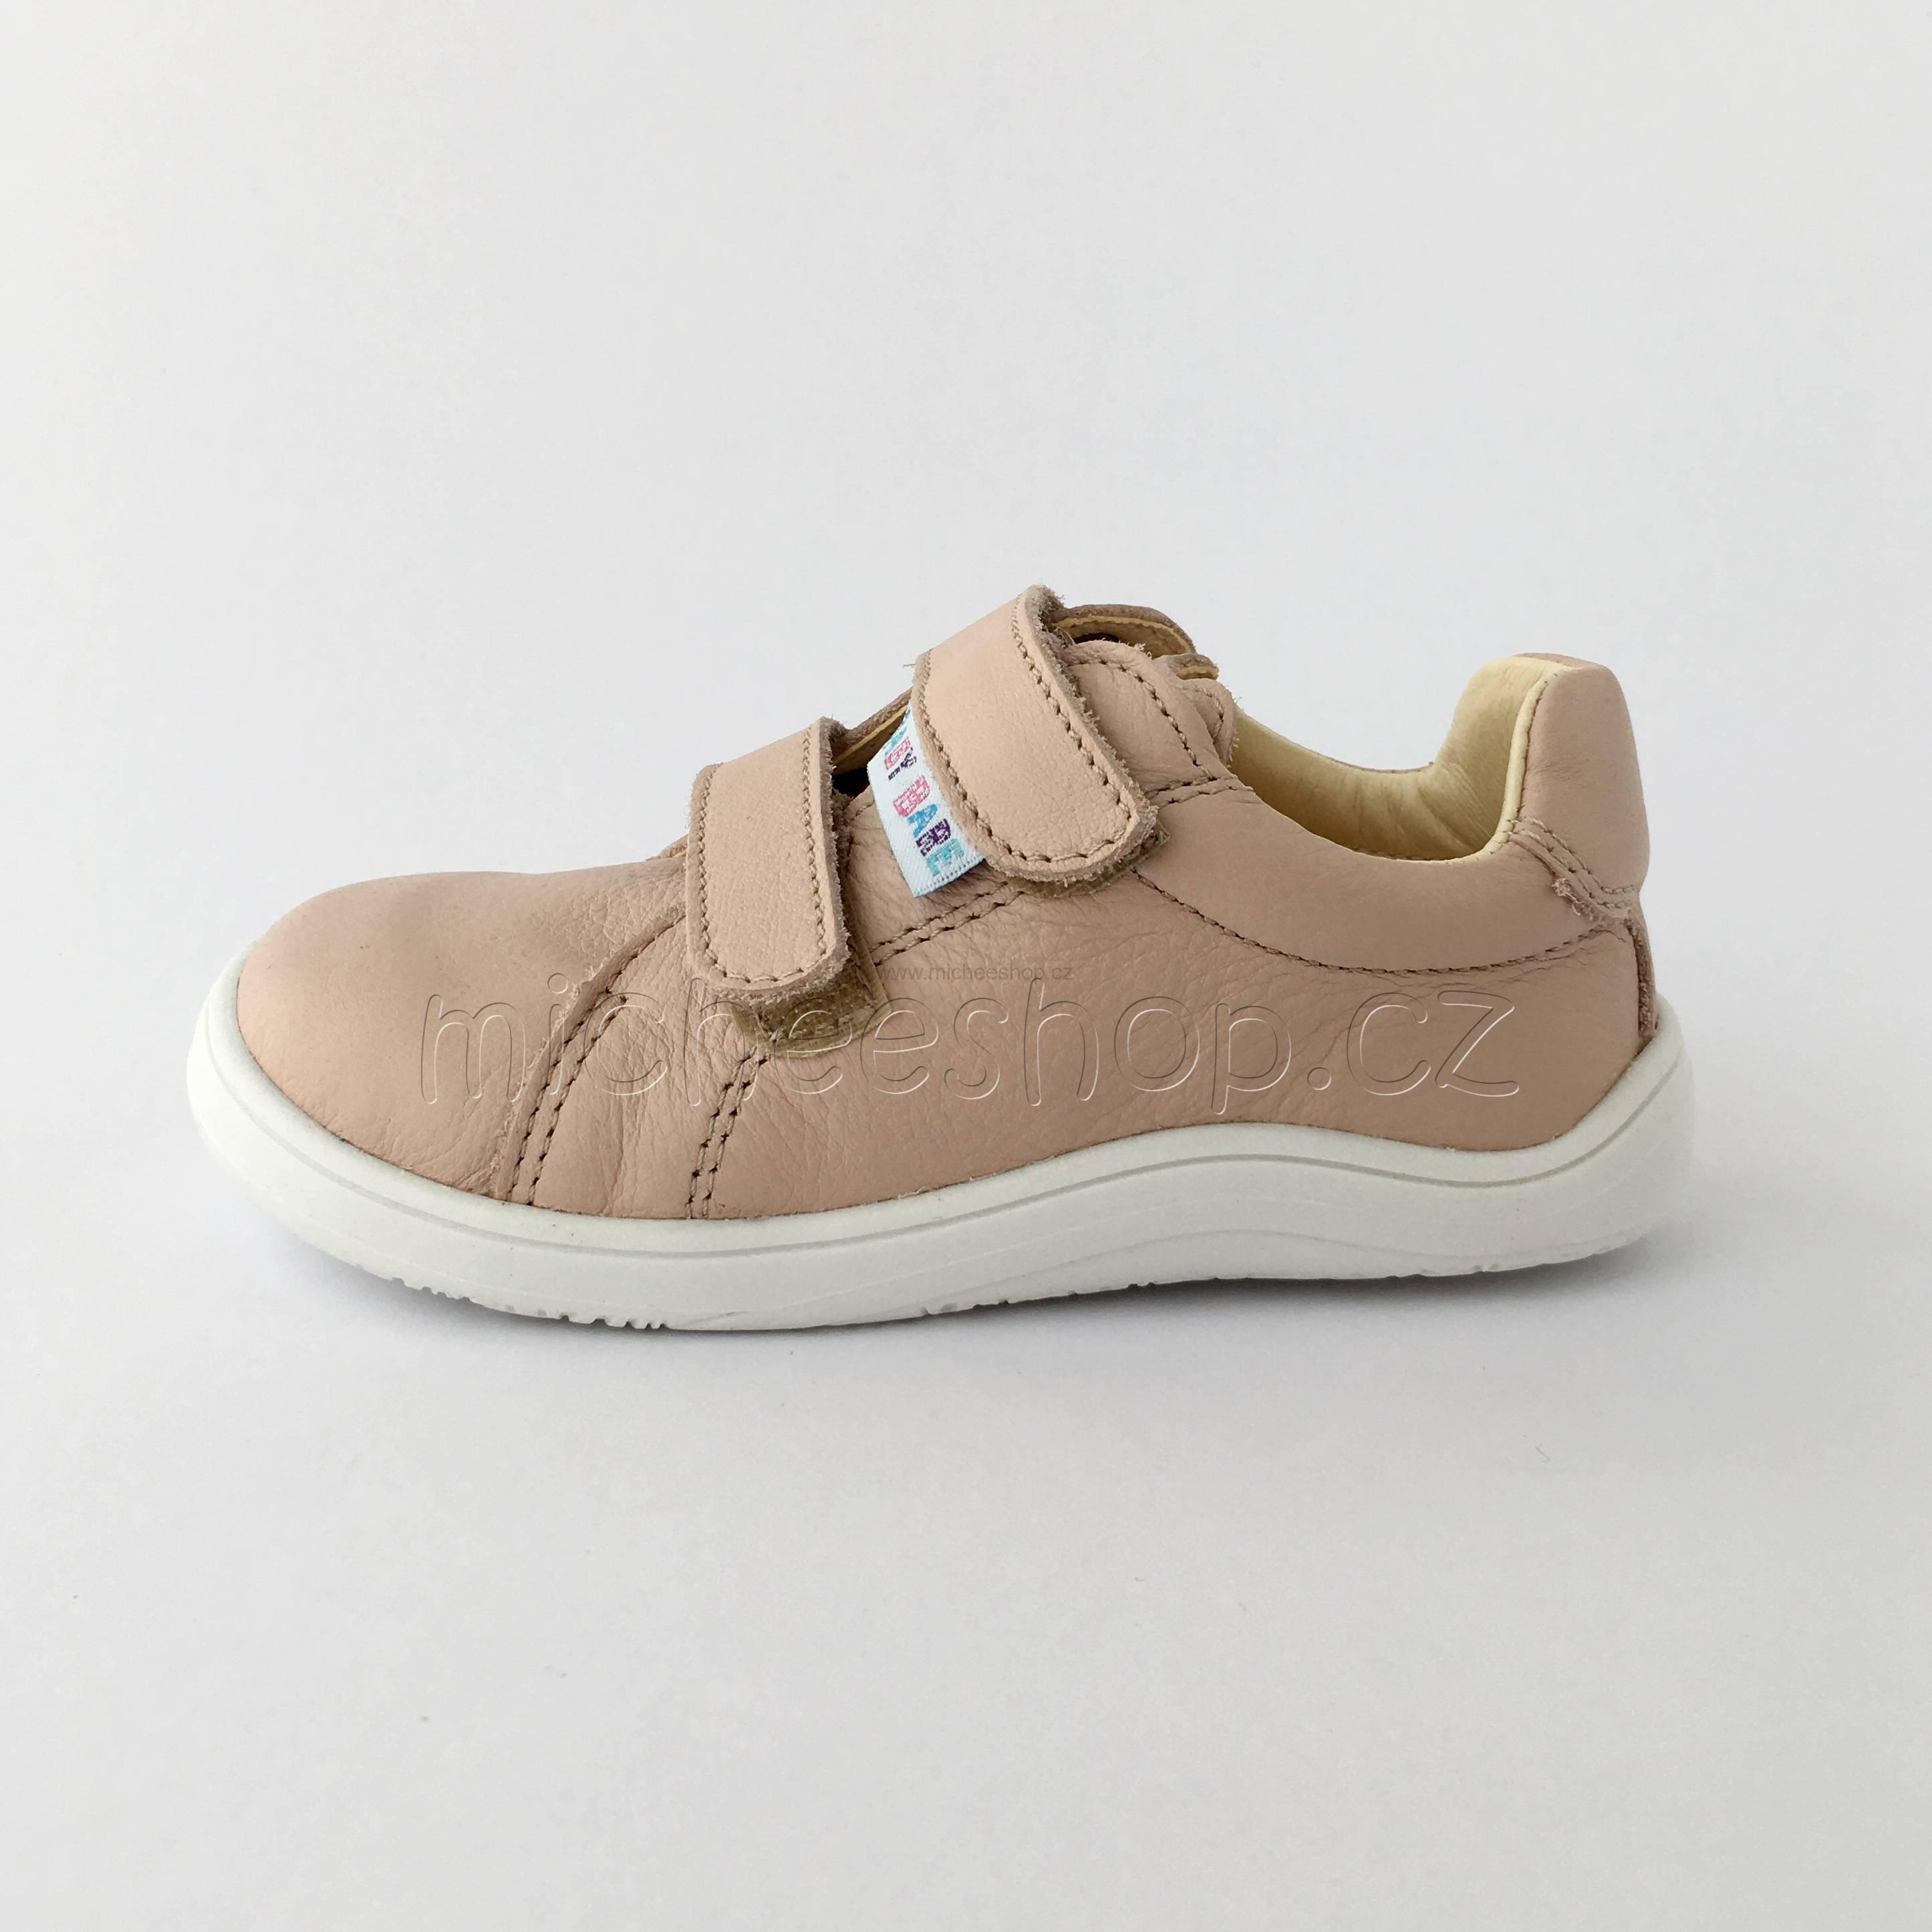 Baby Bare Shoes - Febo Spring Nude v. 25